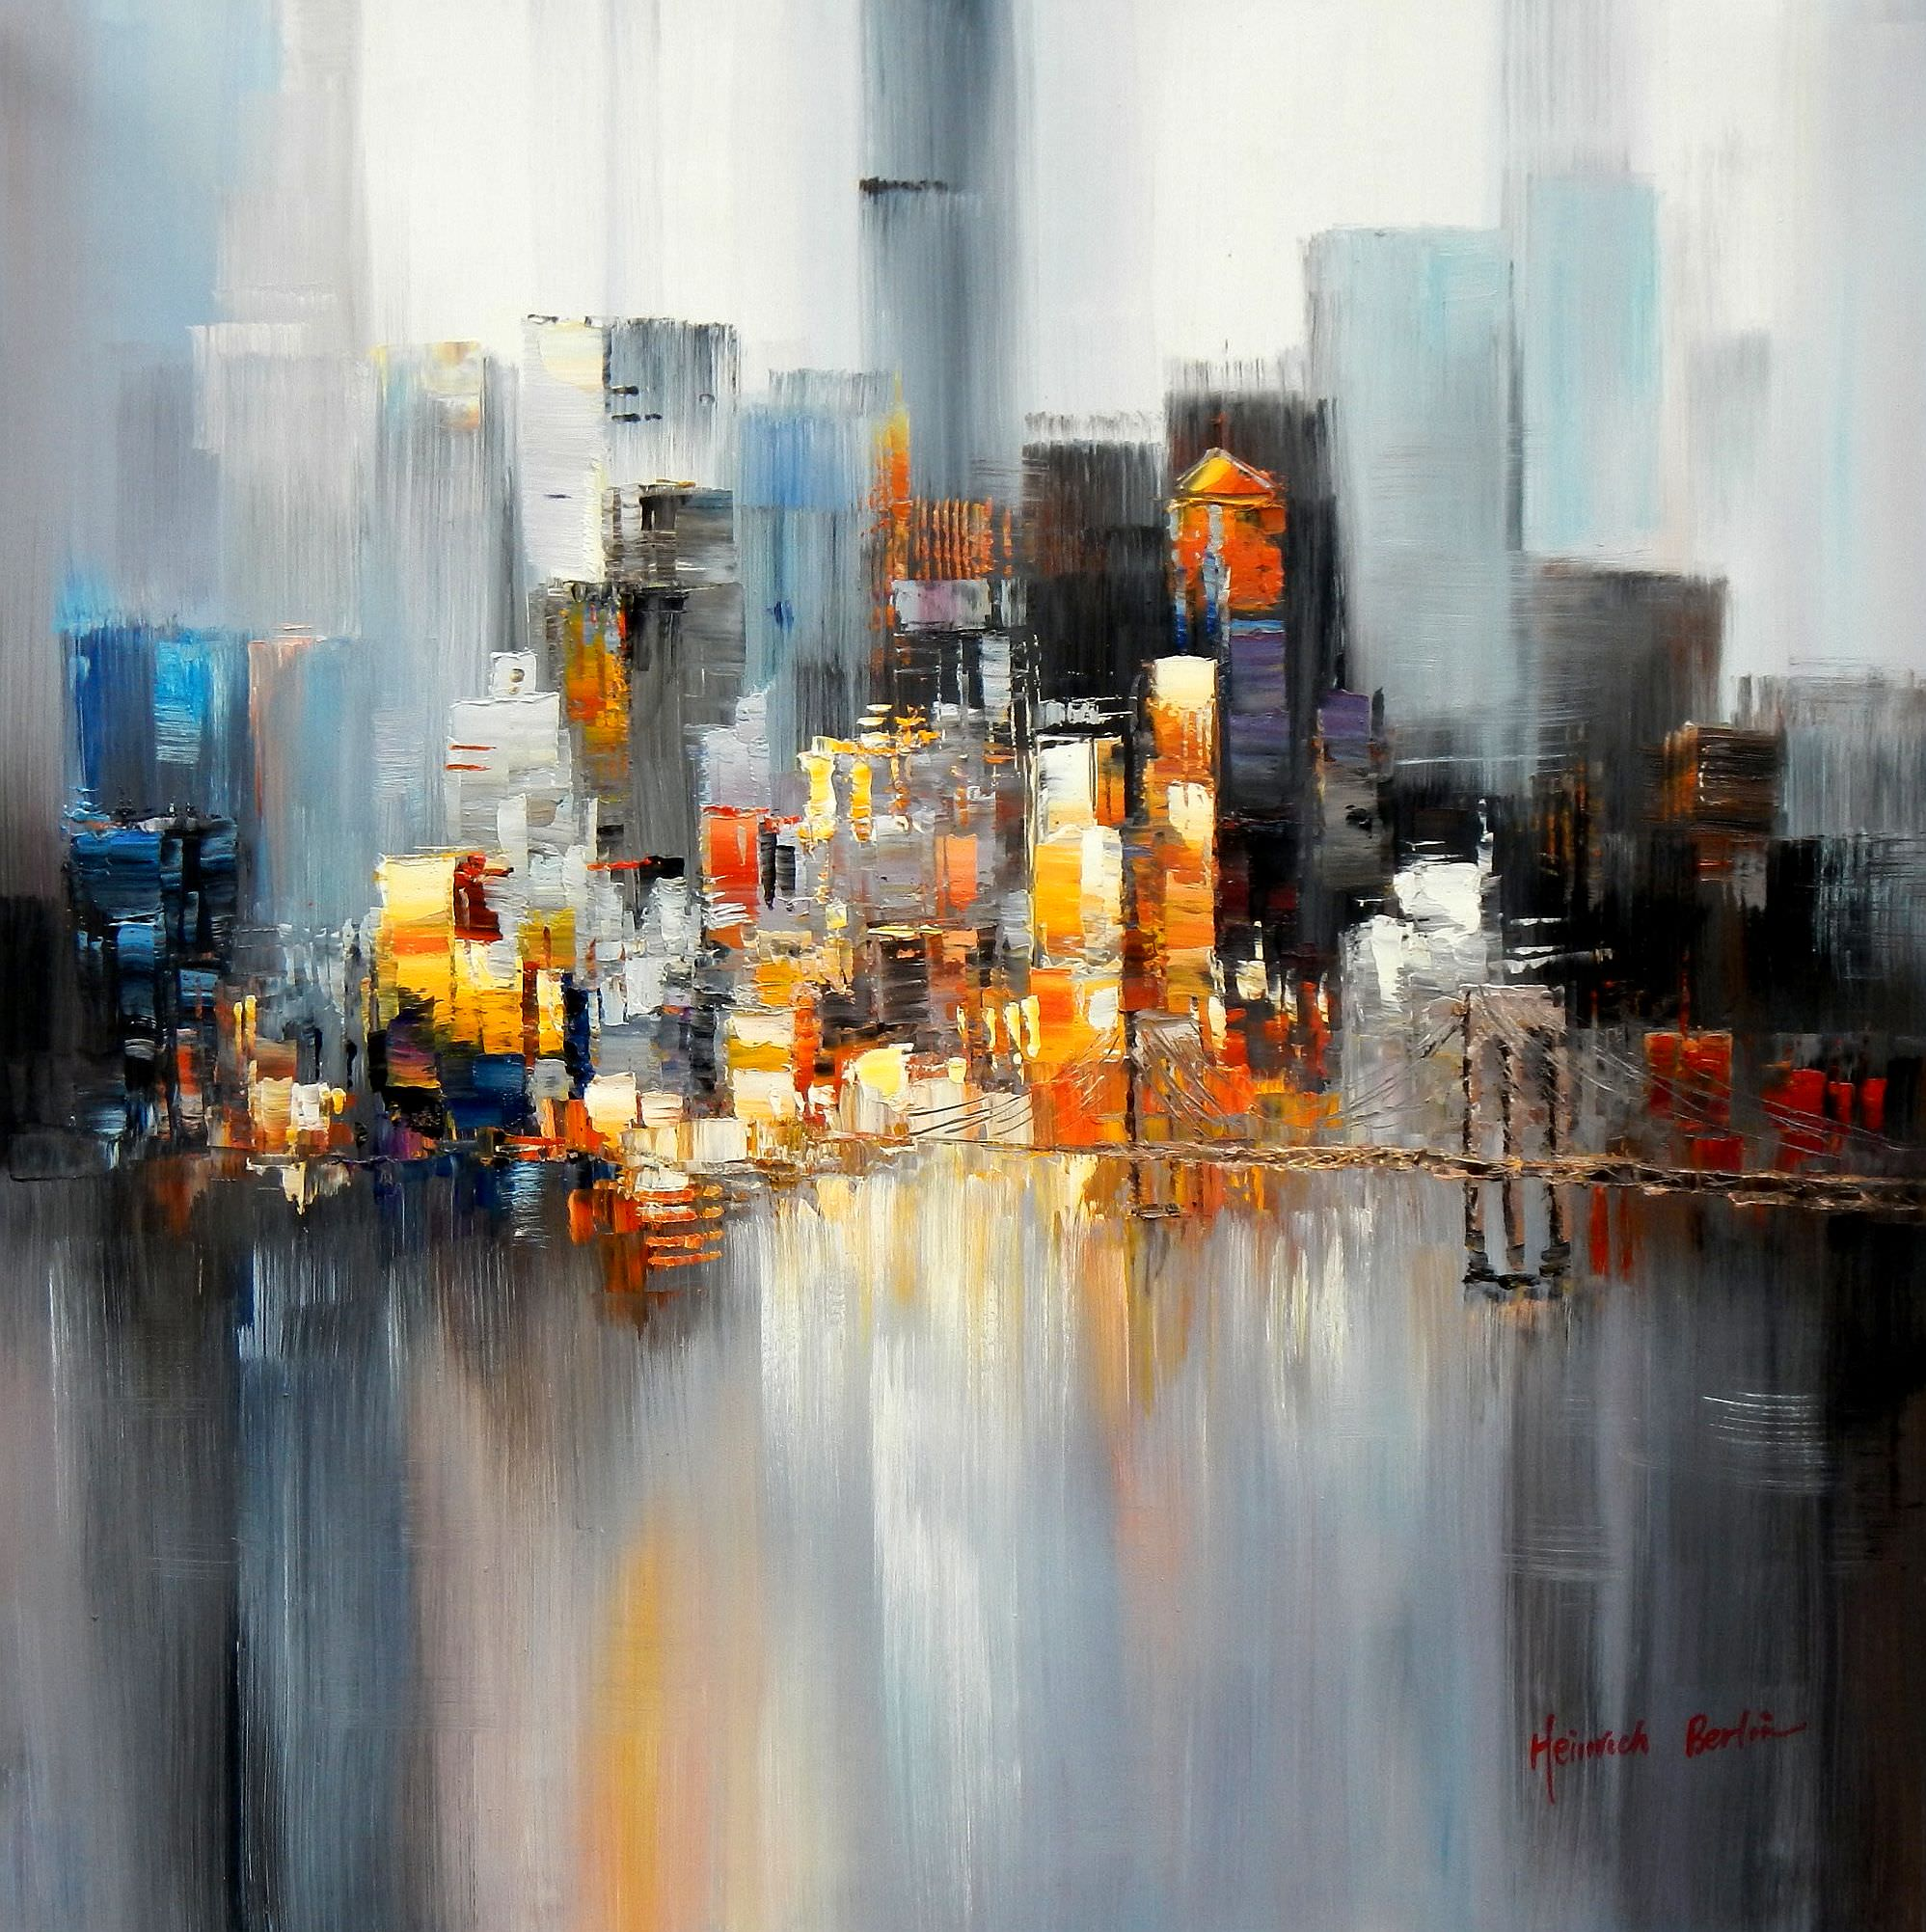 Abstrakt New York Manhattan Skyline im Morgengrau h95259 90x90cm abstraktes Ölbild